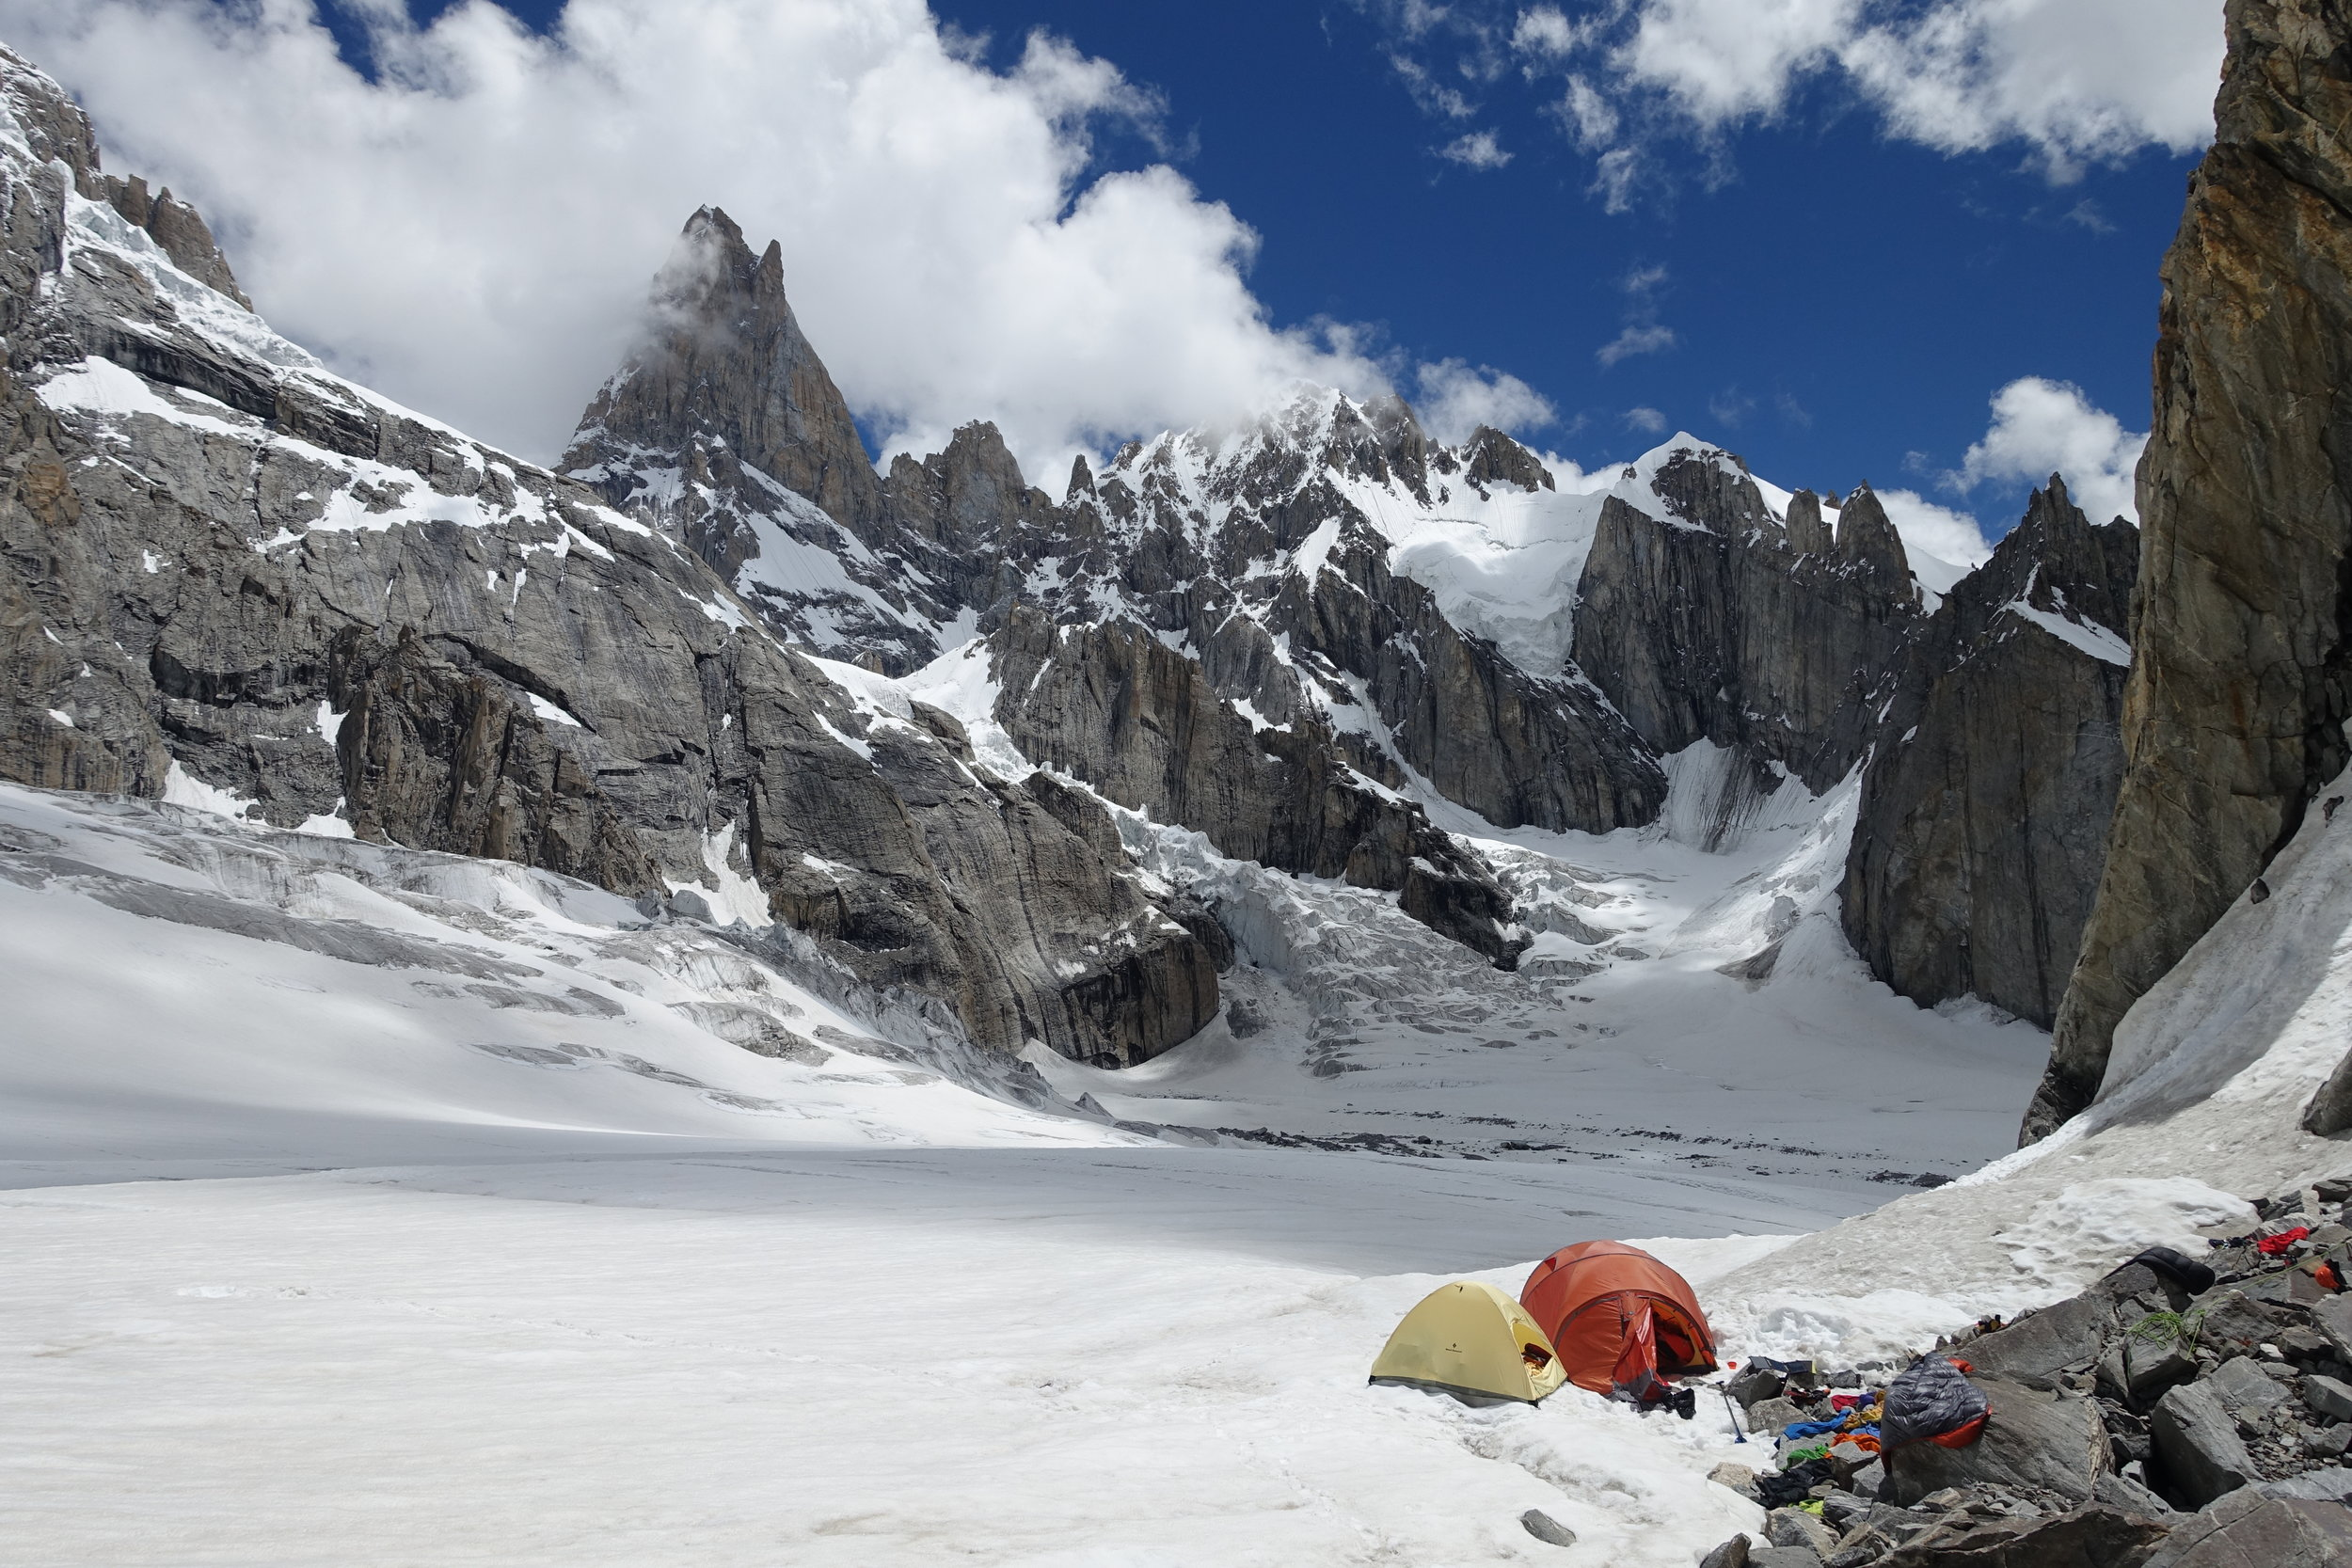 Advanced+Base+Camp+on+Lachit+Glacier+across+from+Changi+Tower.jpg